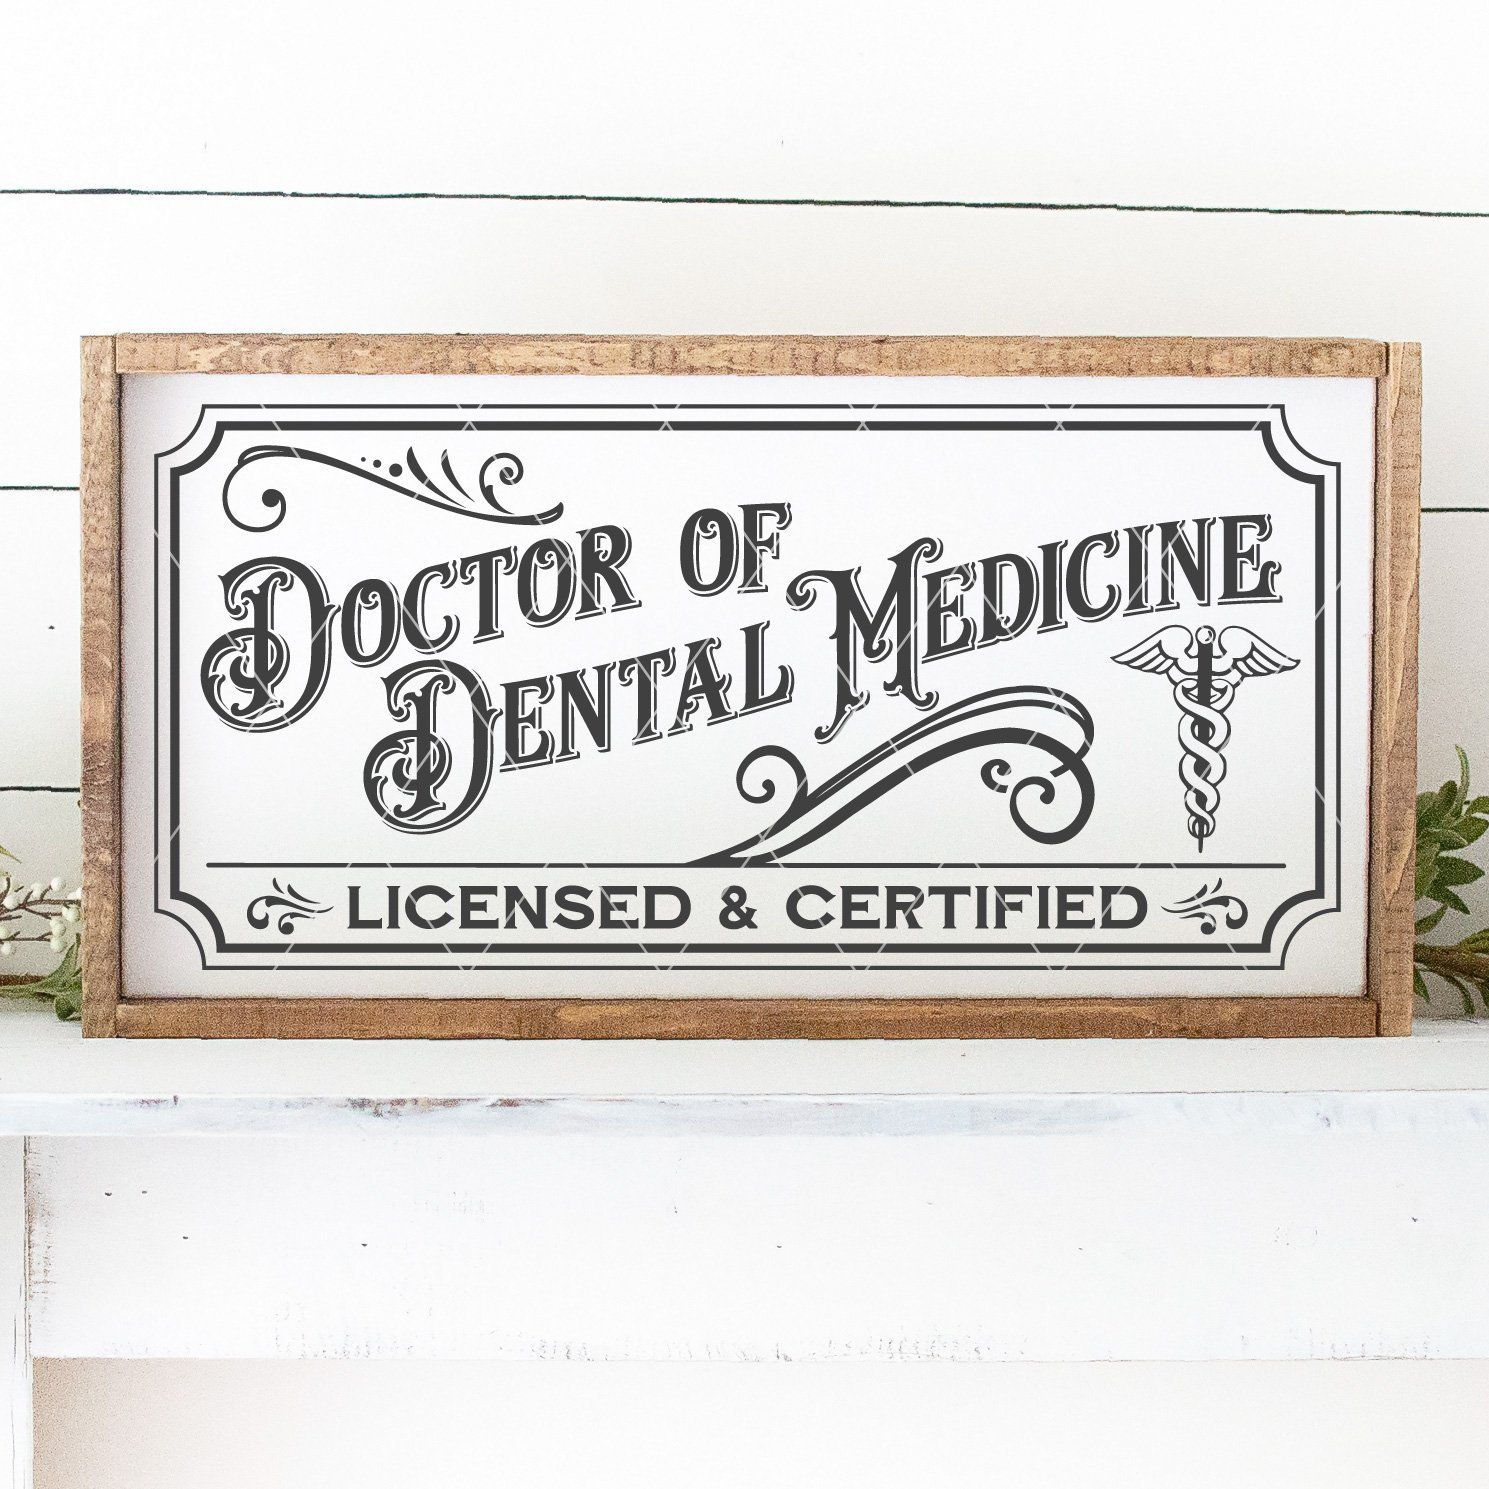 Vintage Doctor of Dental Medicine Sign SVG File - Commercial Use SVG Files